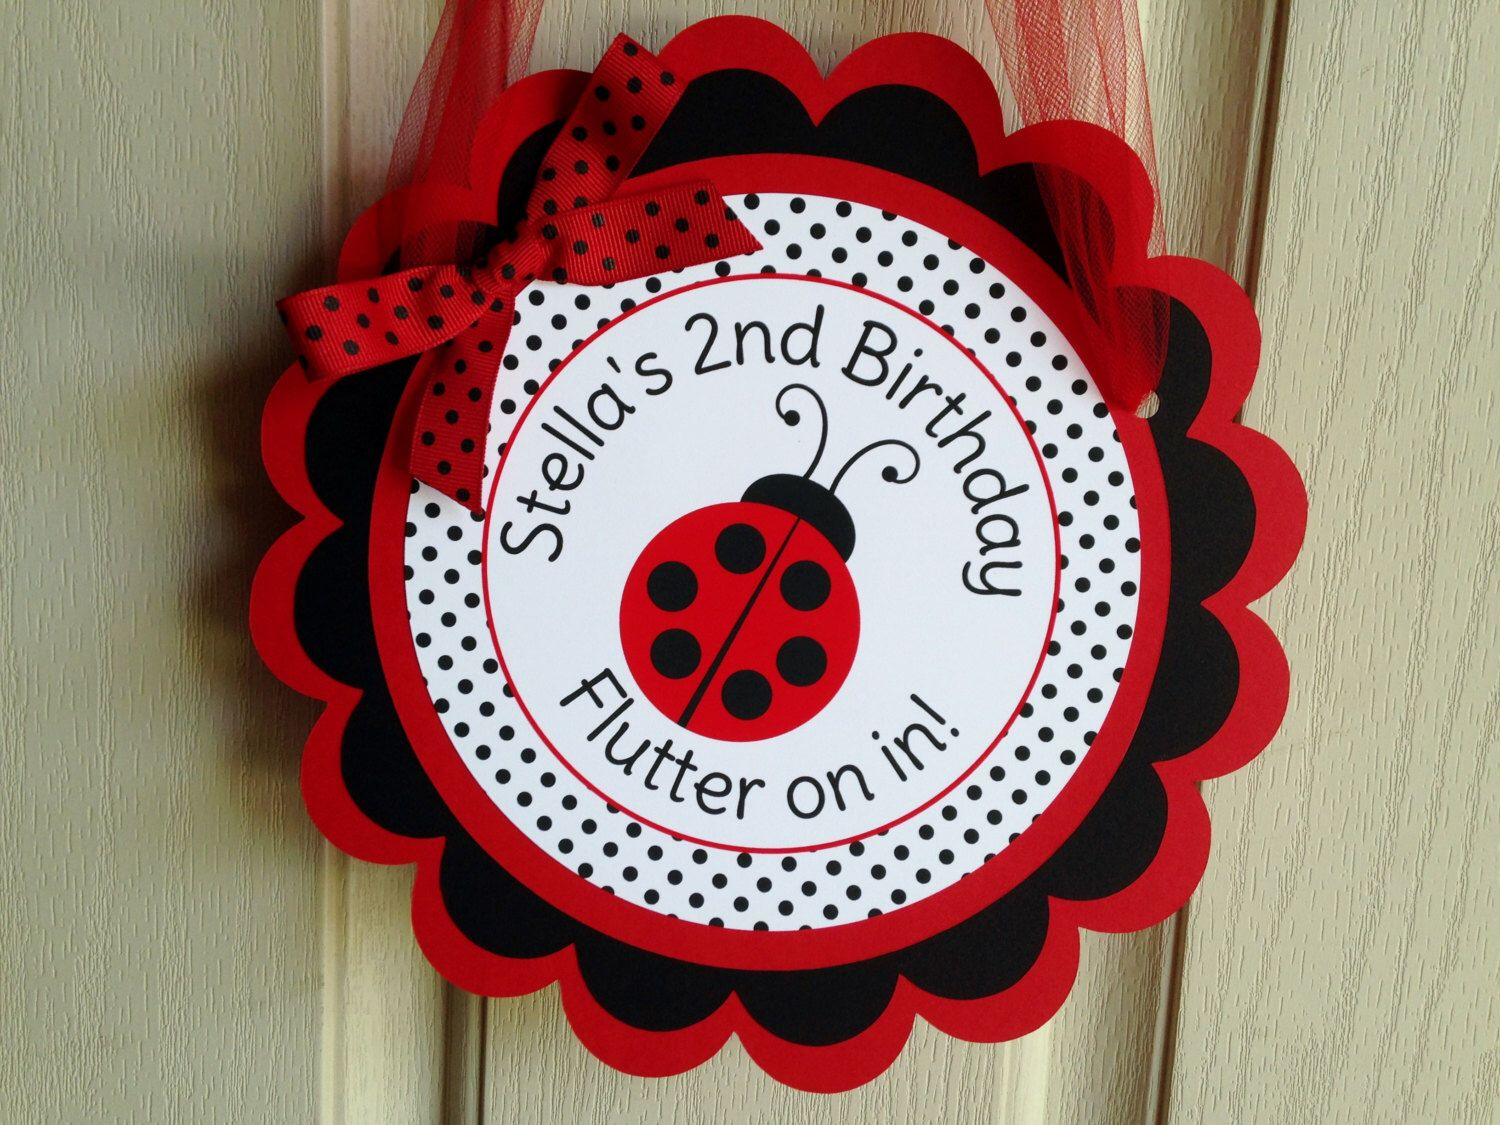 Ladybug Birthday Party Personalized Welcome Door Sign in Red and Black -  Ladybug Party Decorations -